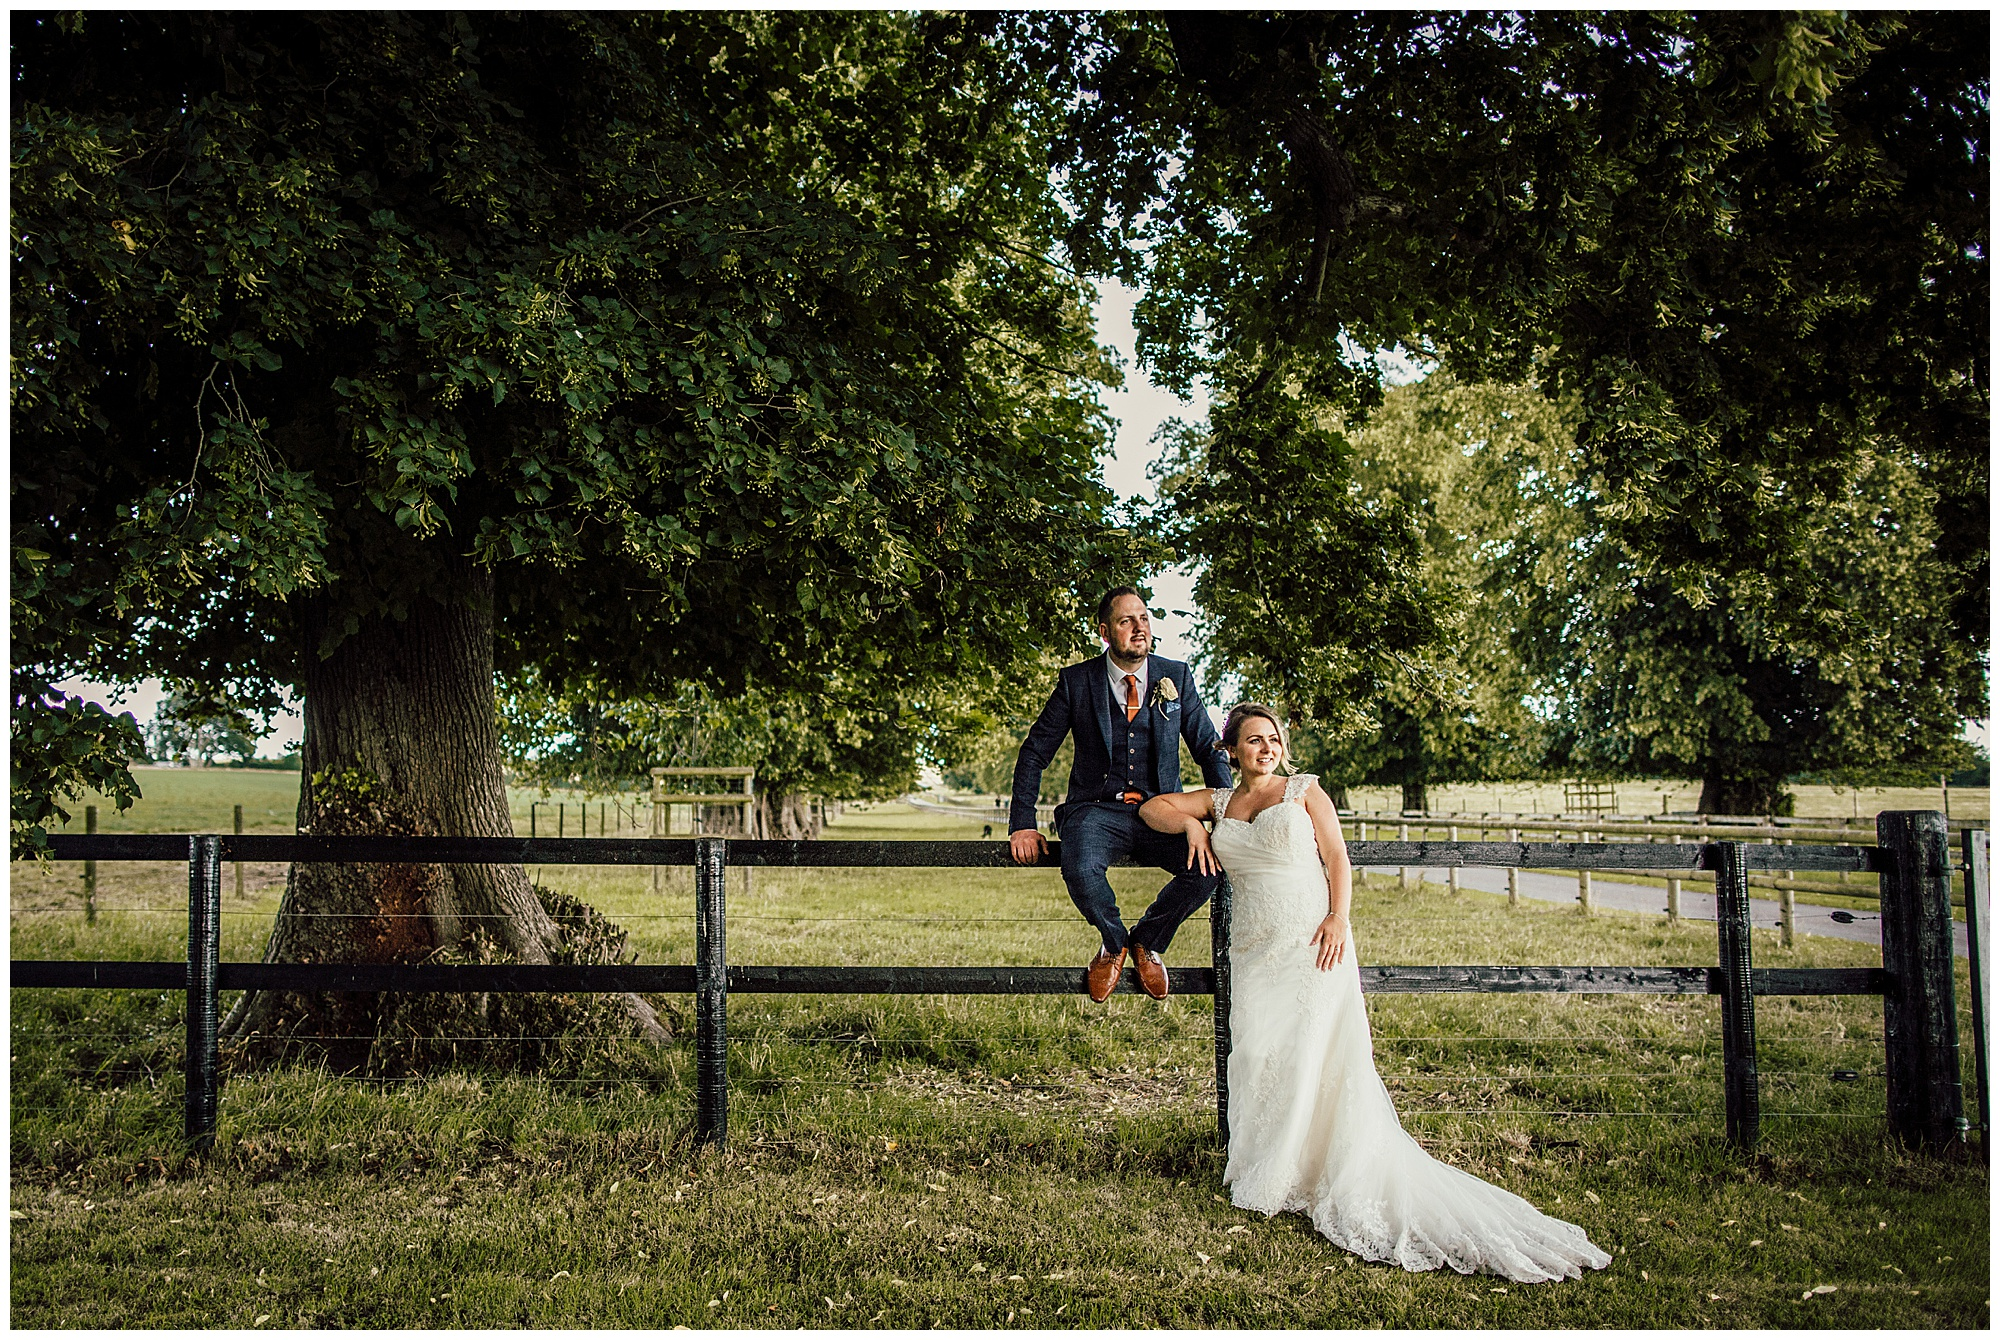 Barford Barn Wiltshire Wedding